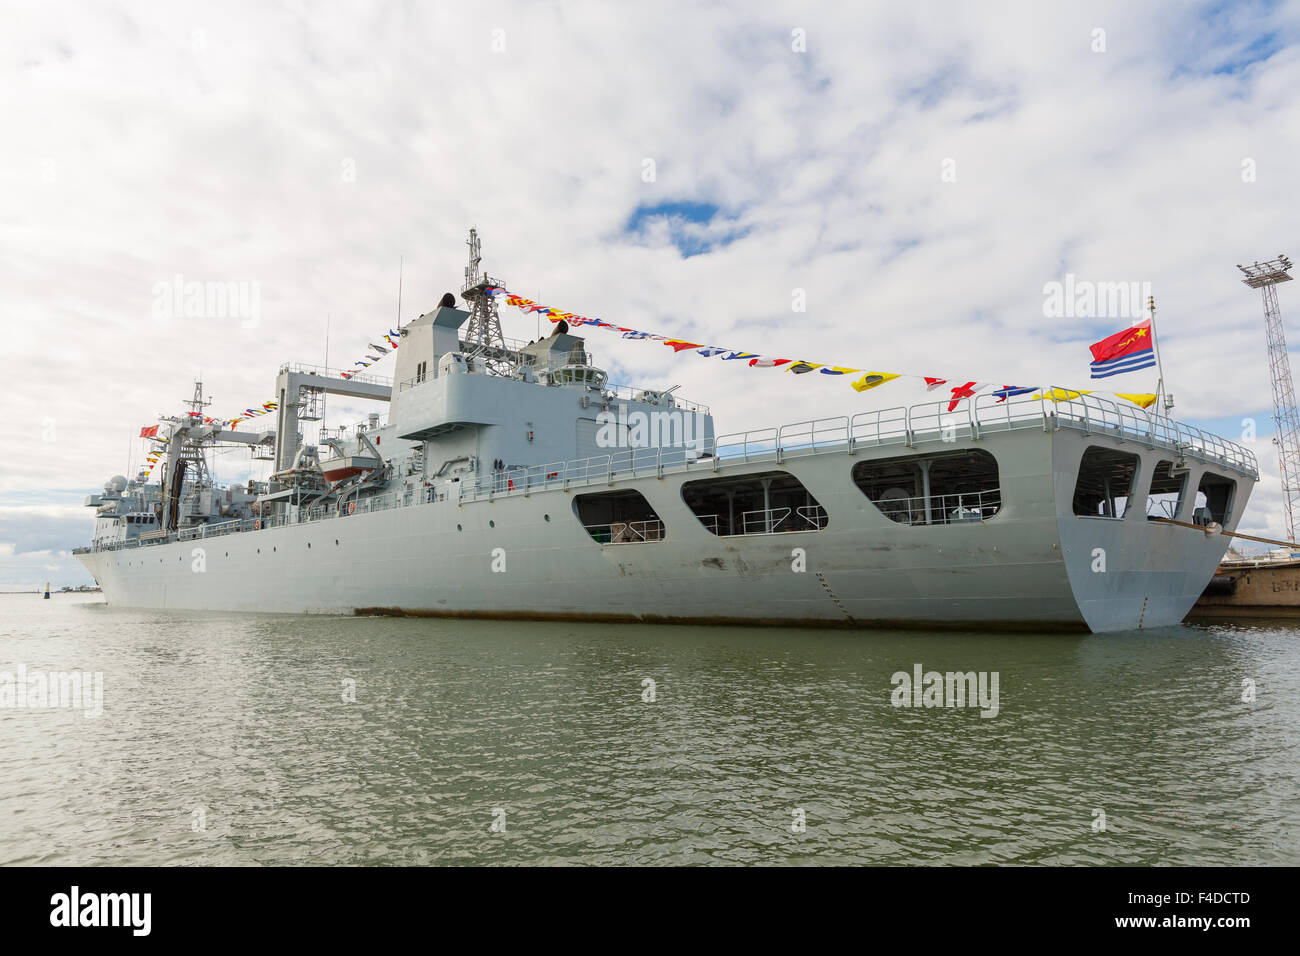 Stern of the replenishment ship AOR Qiandaohu, moored in Helsinki on the very first Chinese naval visit to Finland - Stock Image